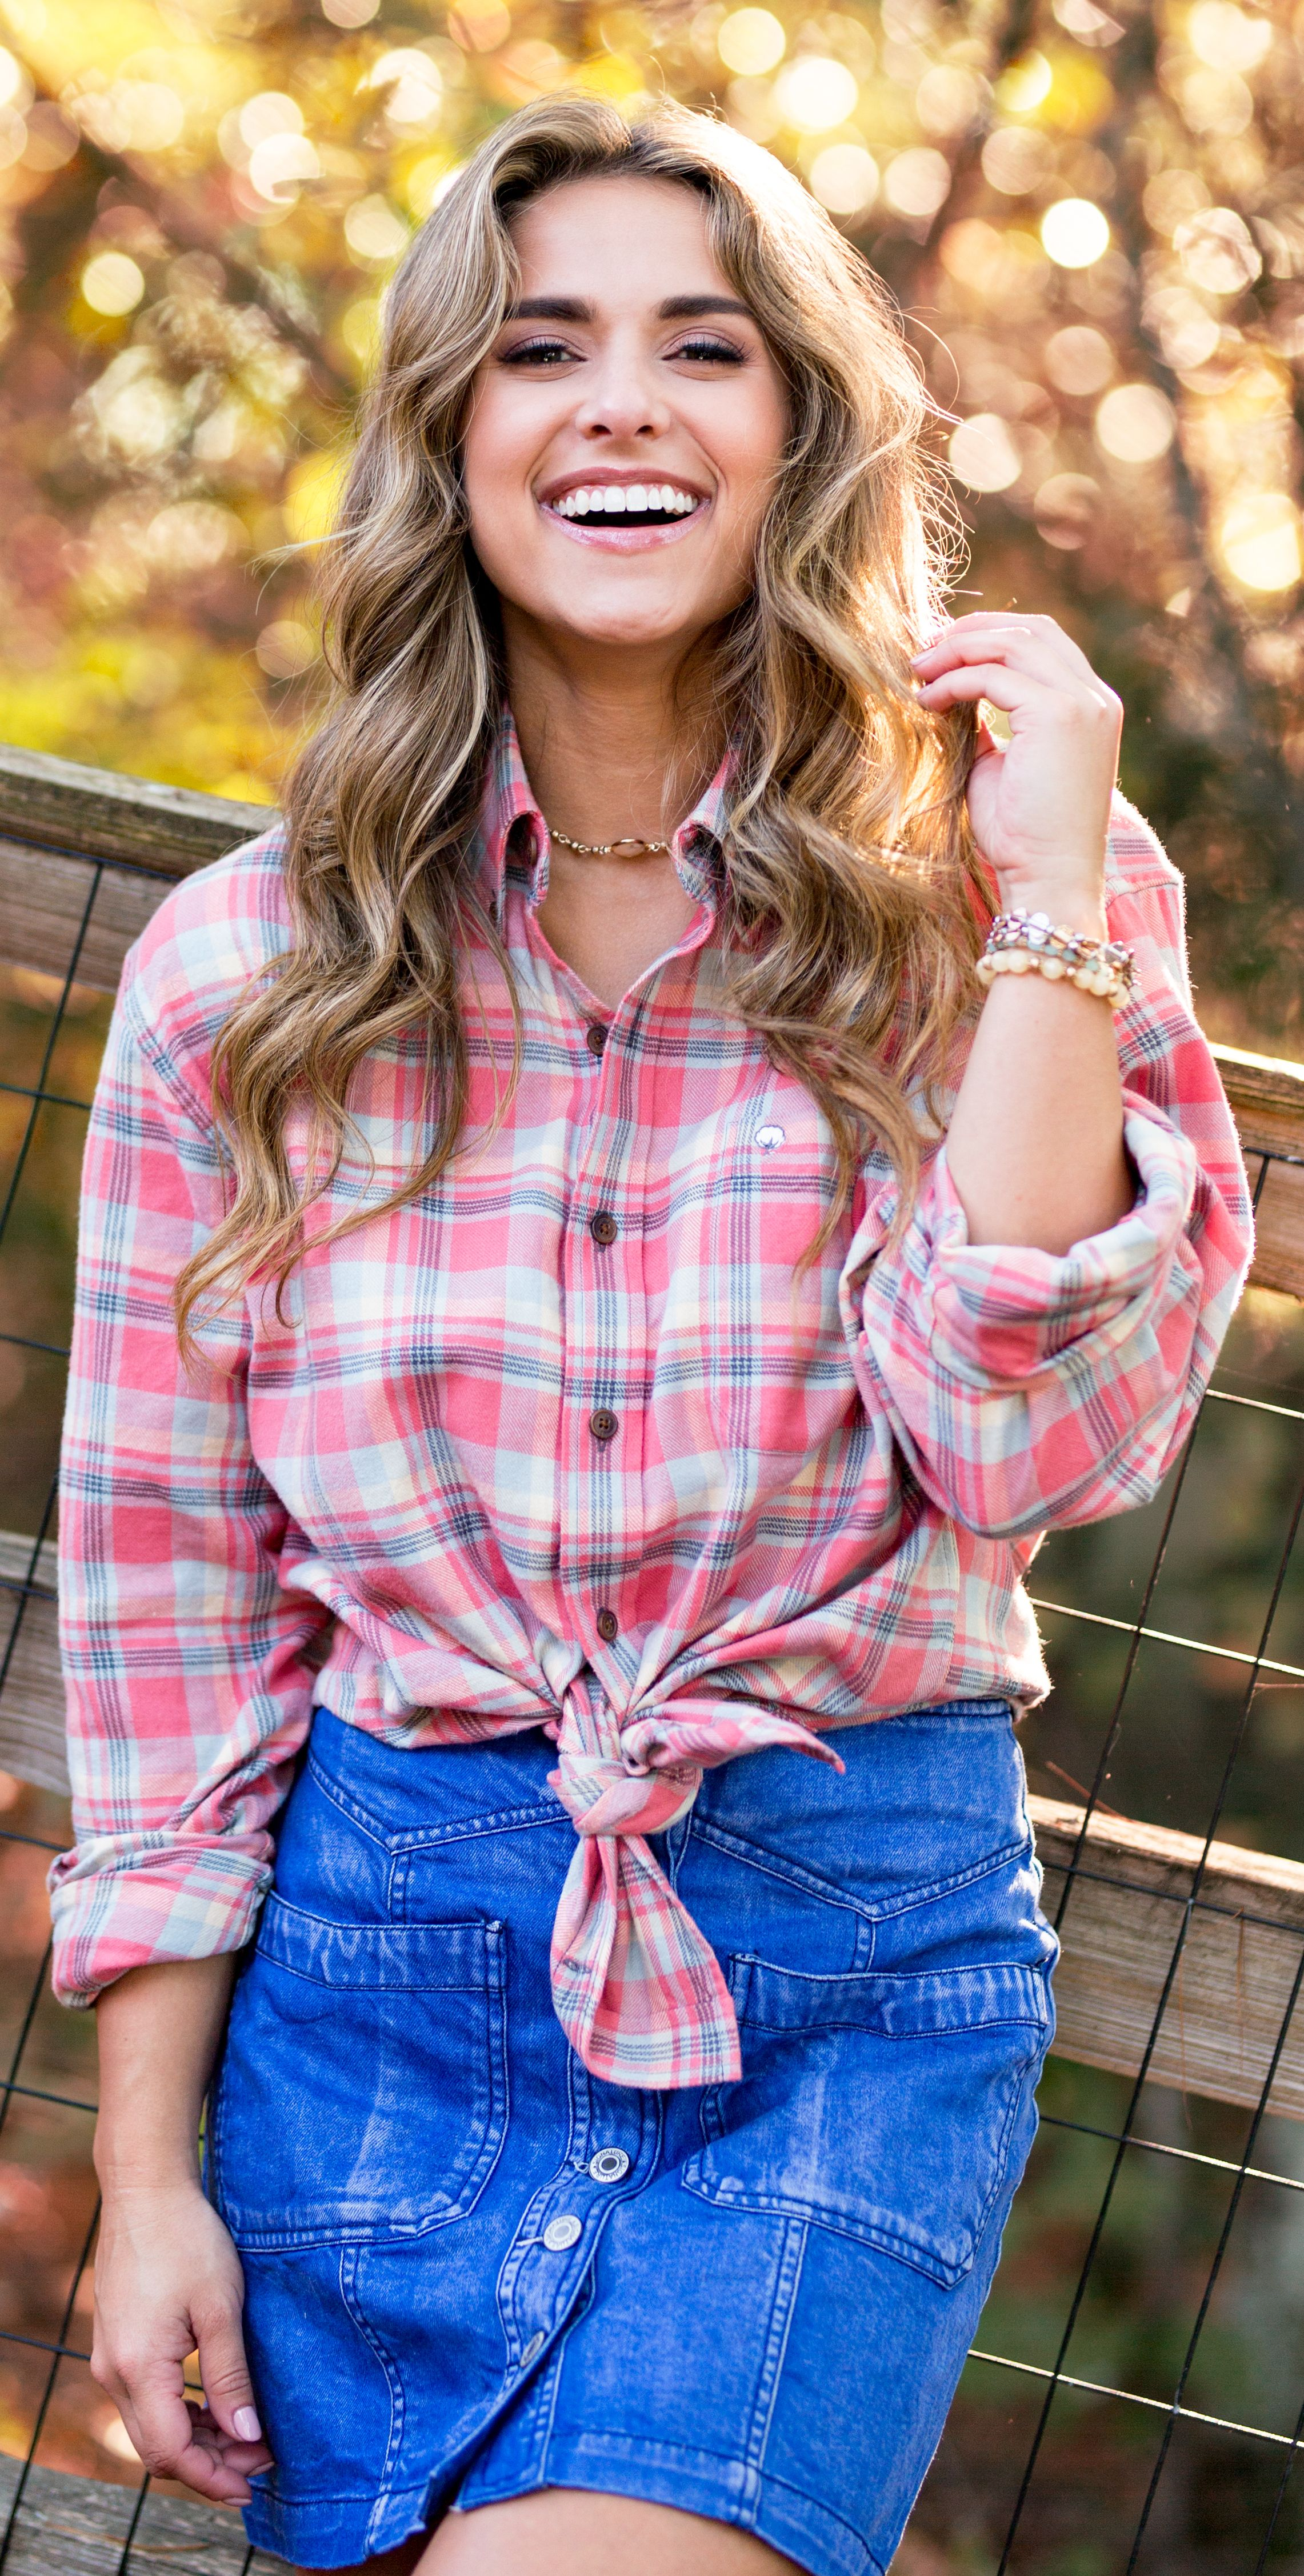 Flannel shirt outfit women  Kennesaw Flannel  Flannel outfits Flannels and Comfy